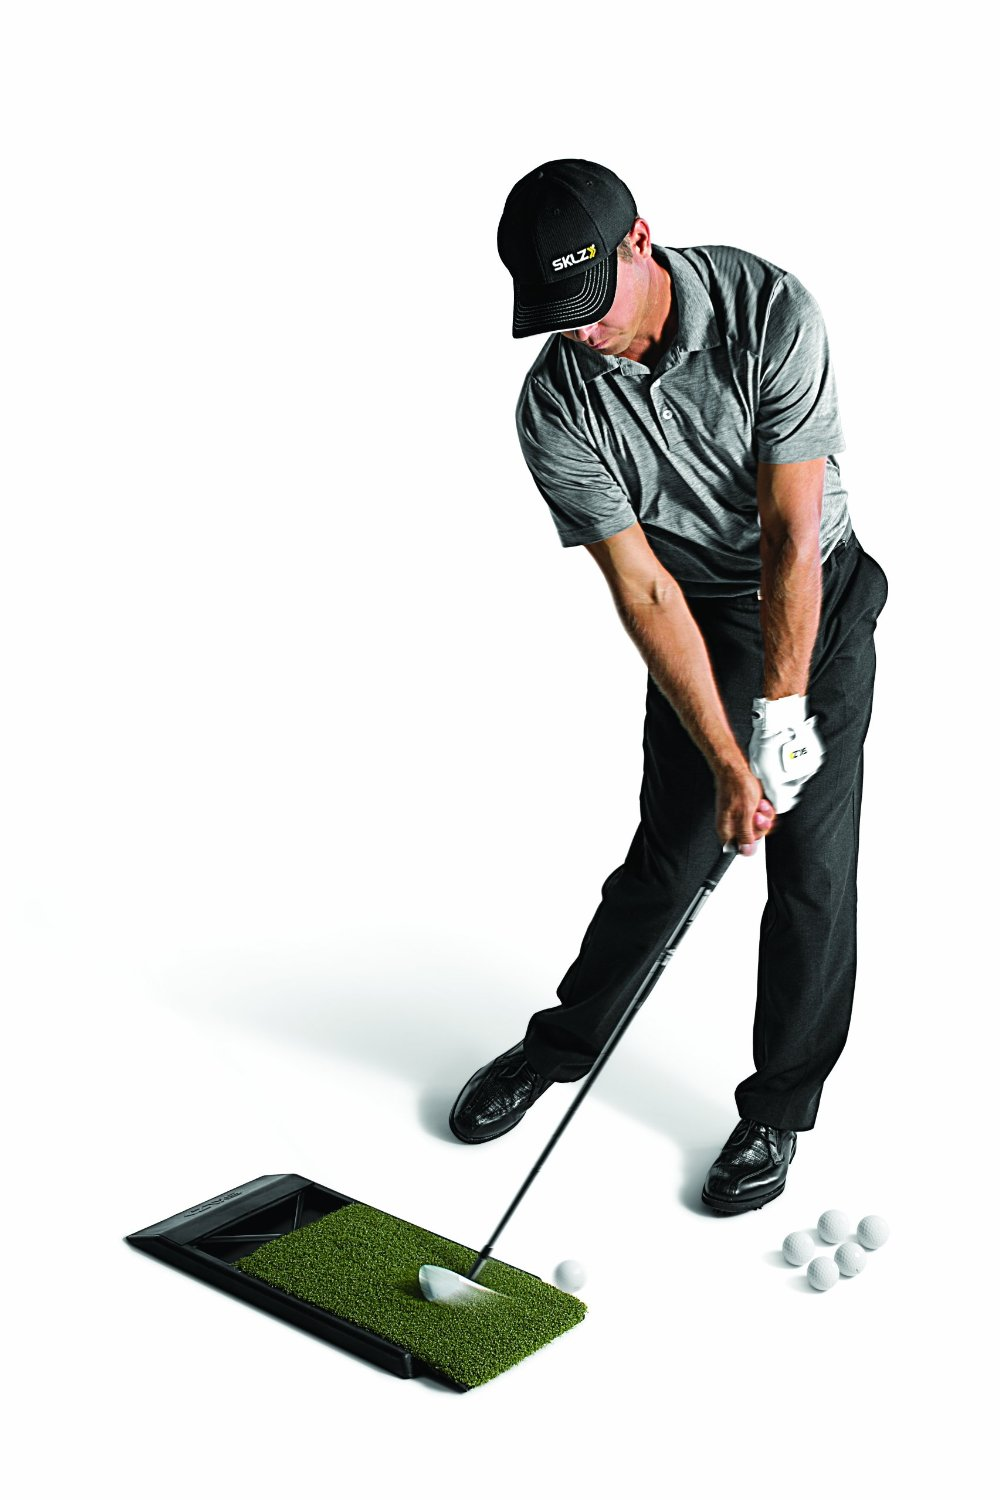 golf launch buy mats forb hitting driving pad world net chipping practice durapro mat sports